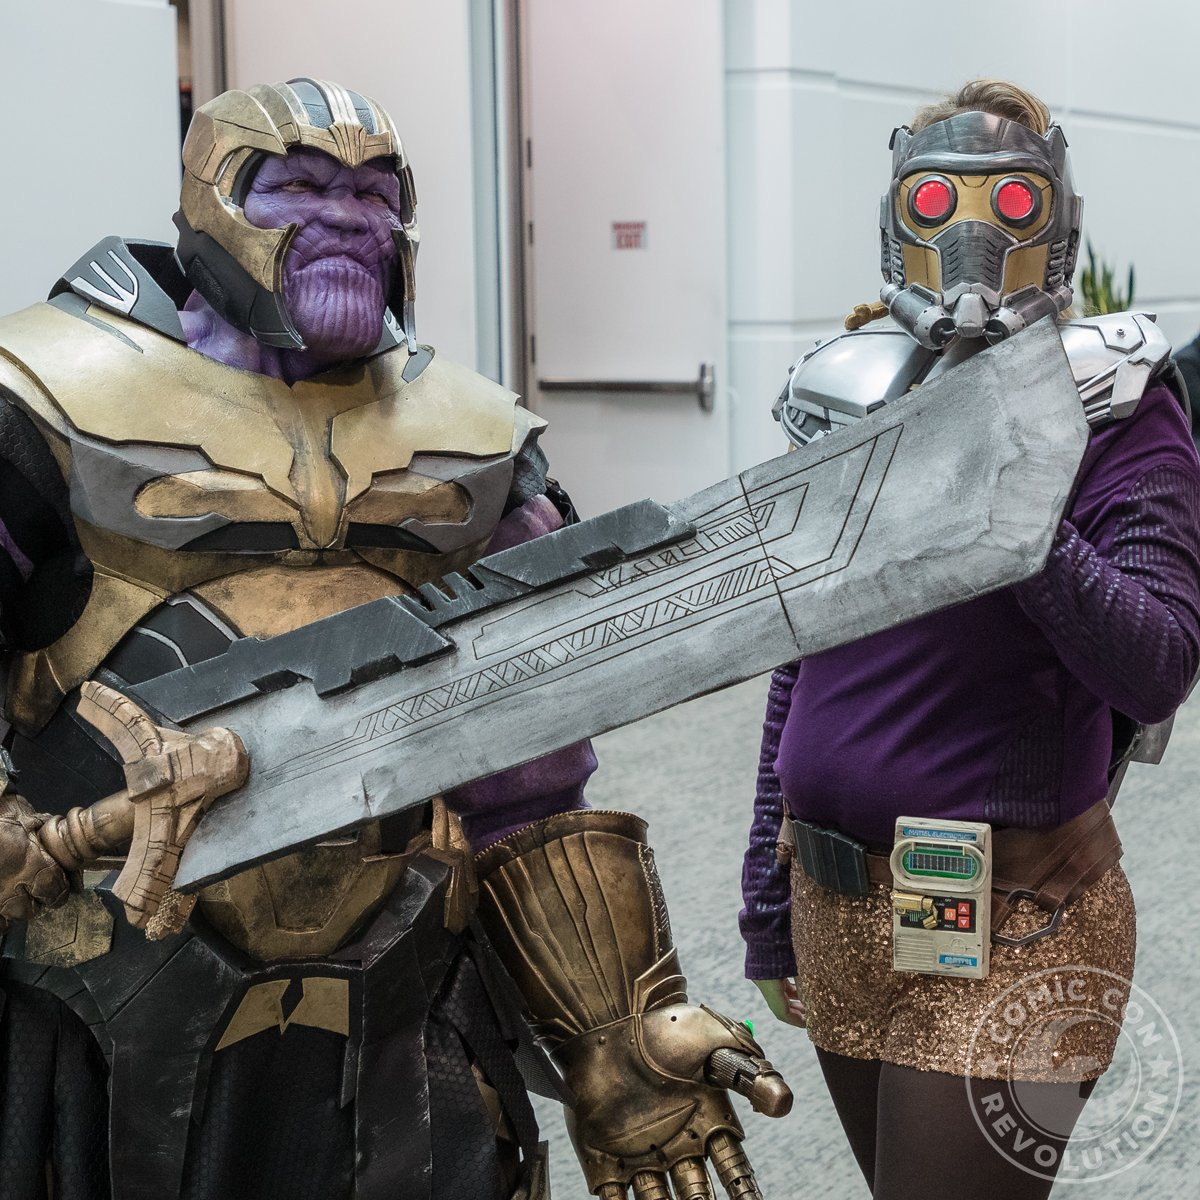 Thinking back to 2019 for our #FlashbackFriday moment. Talk about killer cosplay by our attendees...  #thanos #starlord #comiccon #comicconrevolution #inlandempire https://t.co/I6xiGktflJ